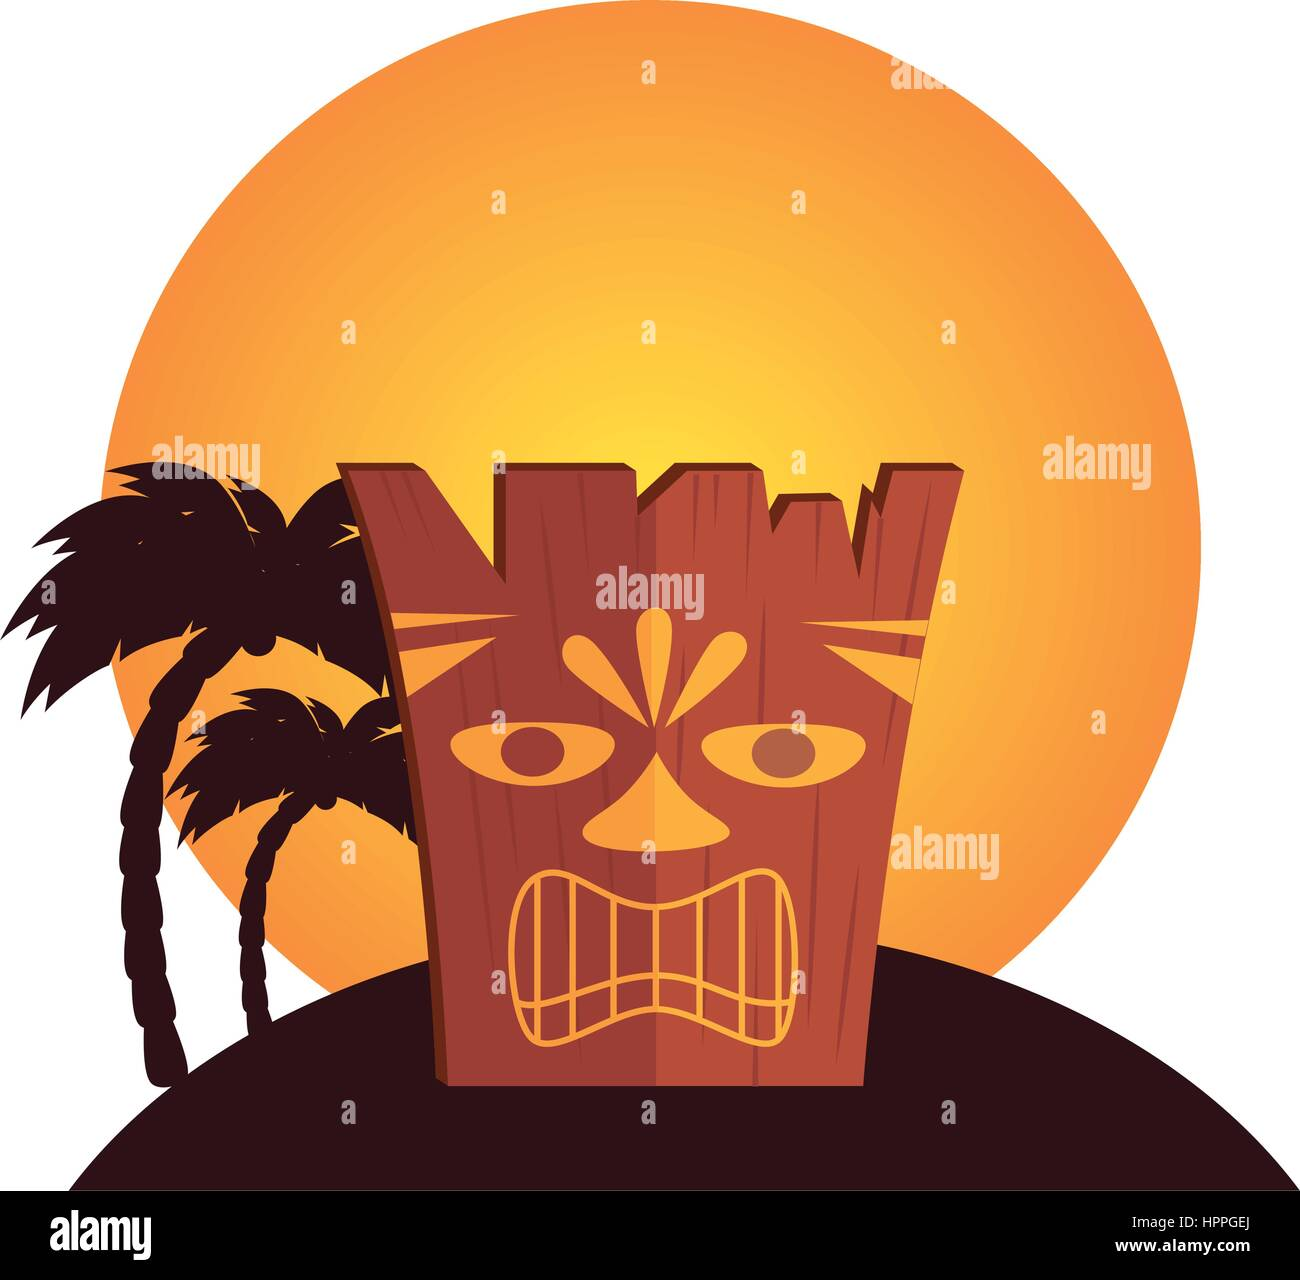 hawaii totem culture icon - Stock Vector